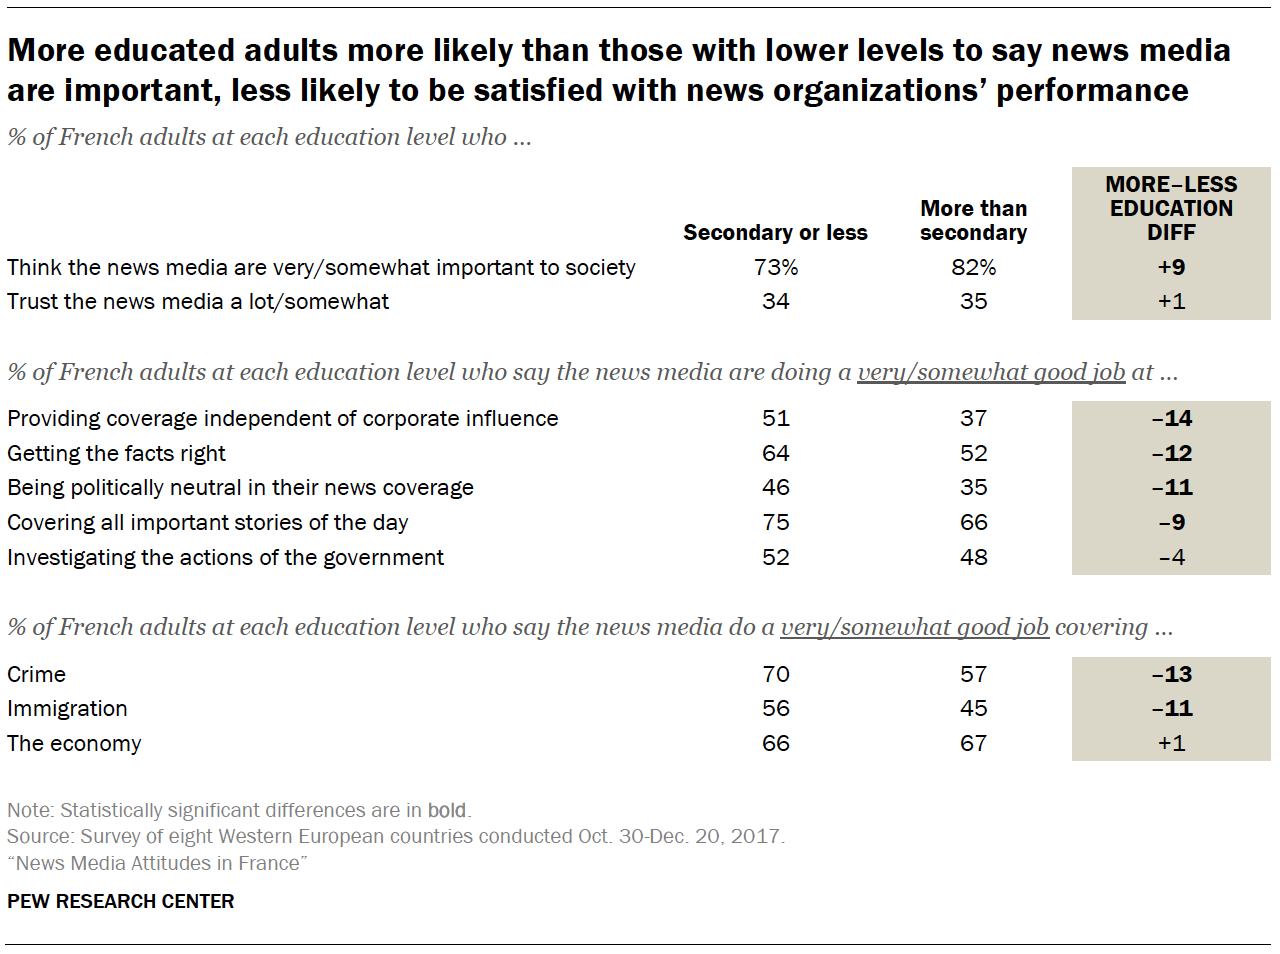 More educated adults more likely than those with lower levels to say news media are important, less likely to be satisfied with news organizations' performance